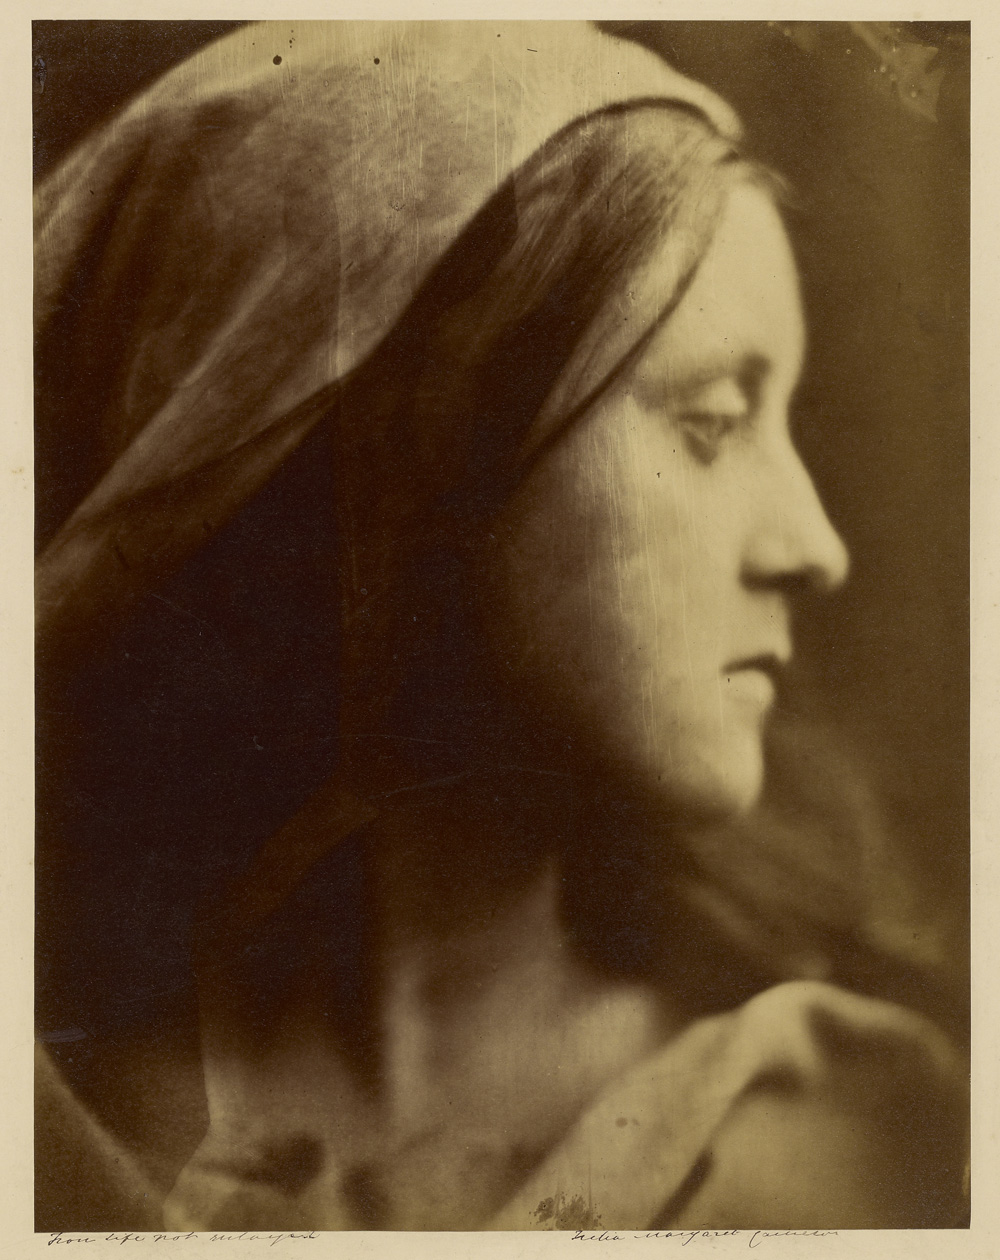 Julia Margaret Cameron (British, born India, 1815 - 1879)  [Study for a Holy Family] , 1866 - 1870, Albumen silver print 34.1 x 26.5 cm (13 7/16 x 10 7/16 in.) The J. Paul Getty Museum, Los Angeles